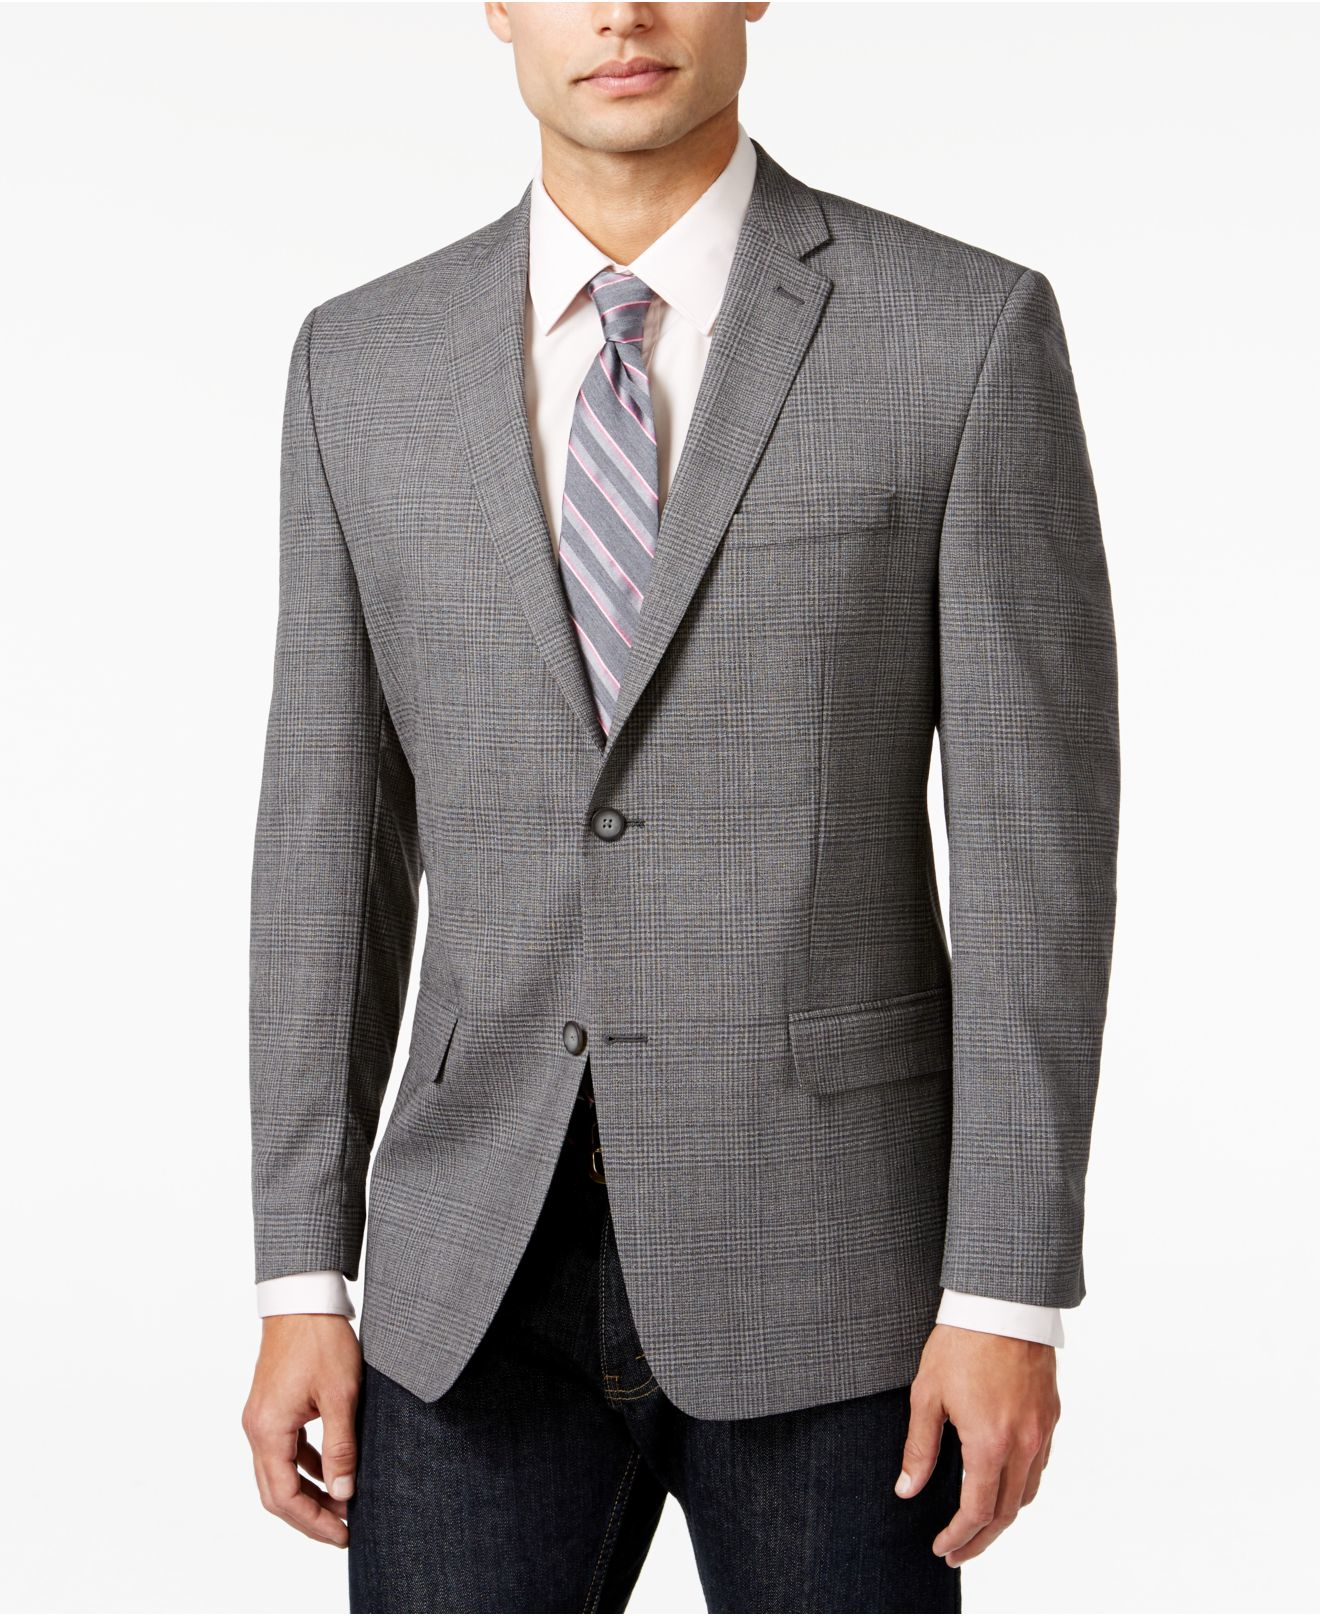 Find great deals on eBay for light gray coat. Shop with confidence.